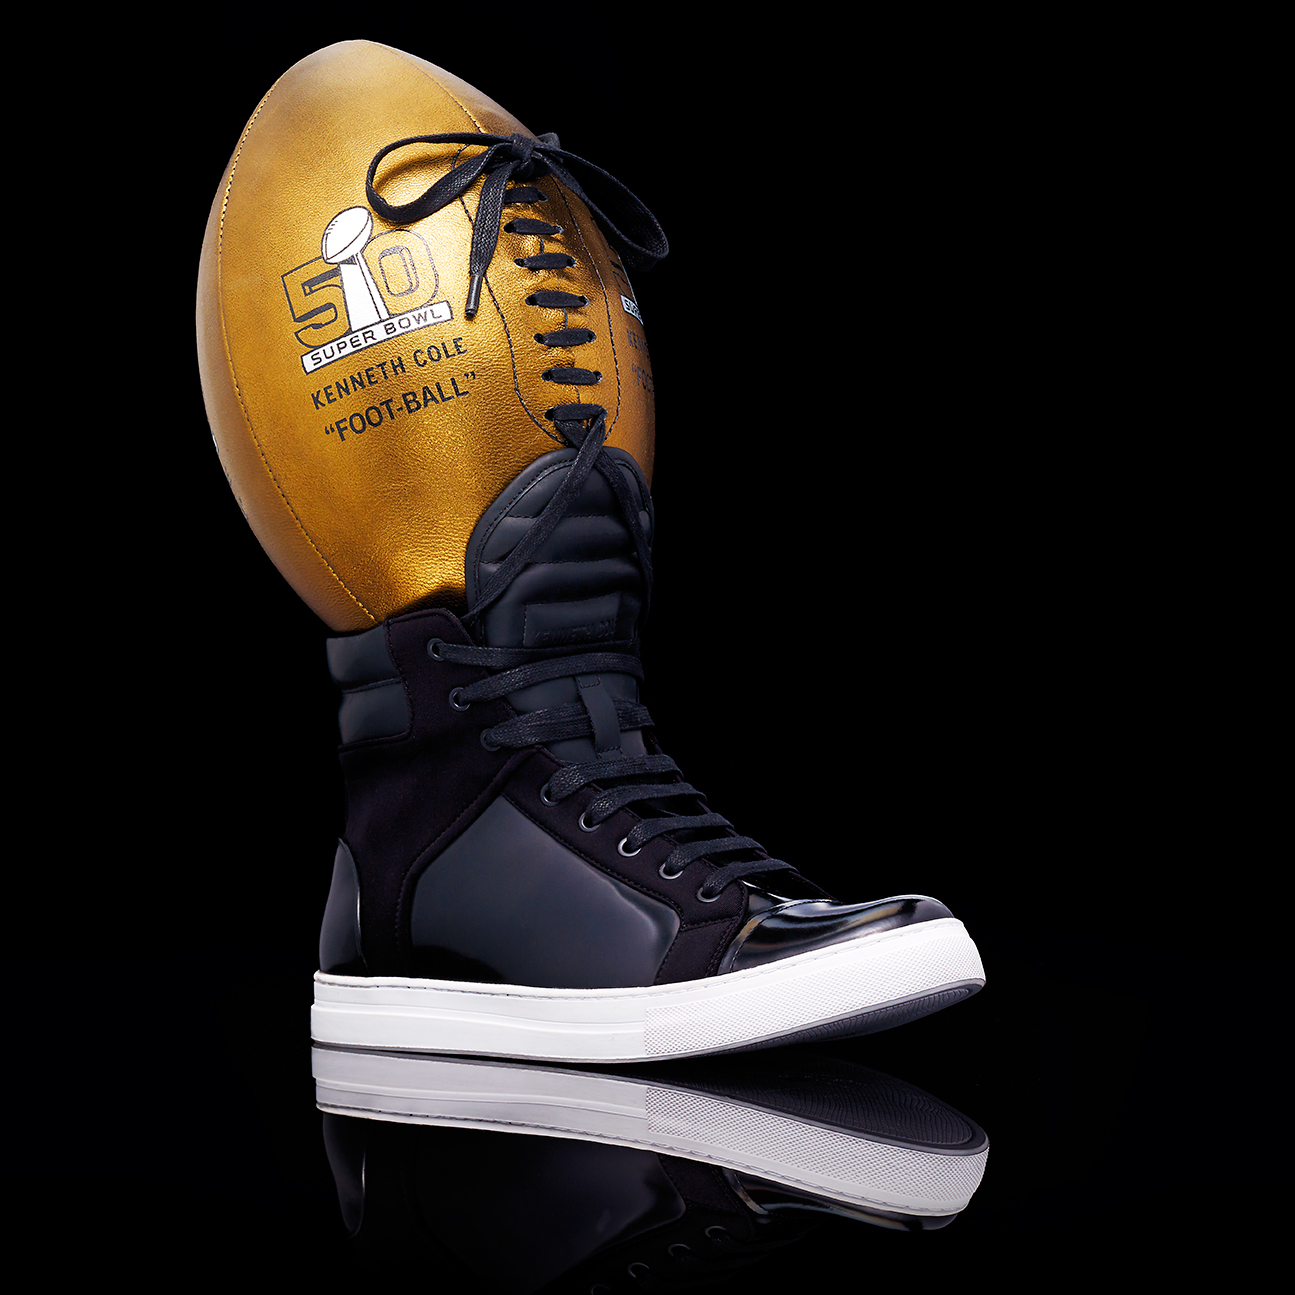 UNIQUE KENNITH COLE SHOE LACED TOGETHER WITH A SUPER BOWL 50 BALL SHOT BY DAVID FILIBERTI